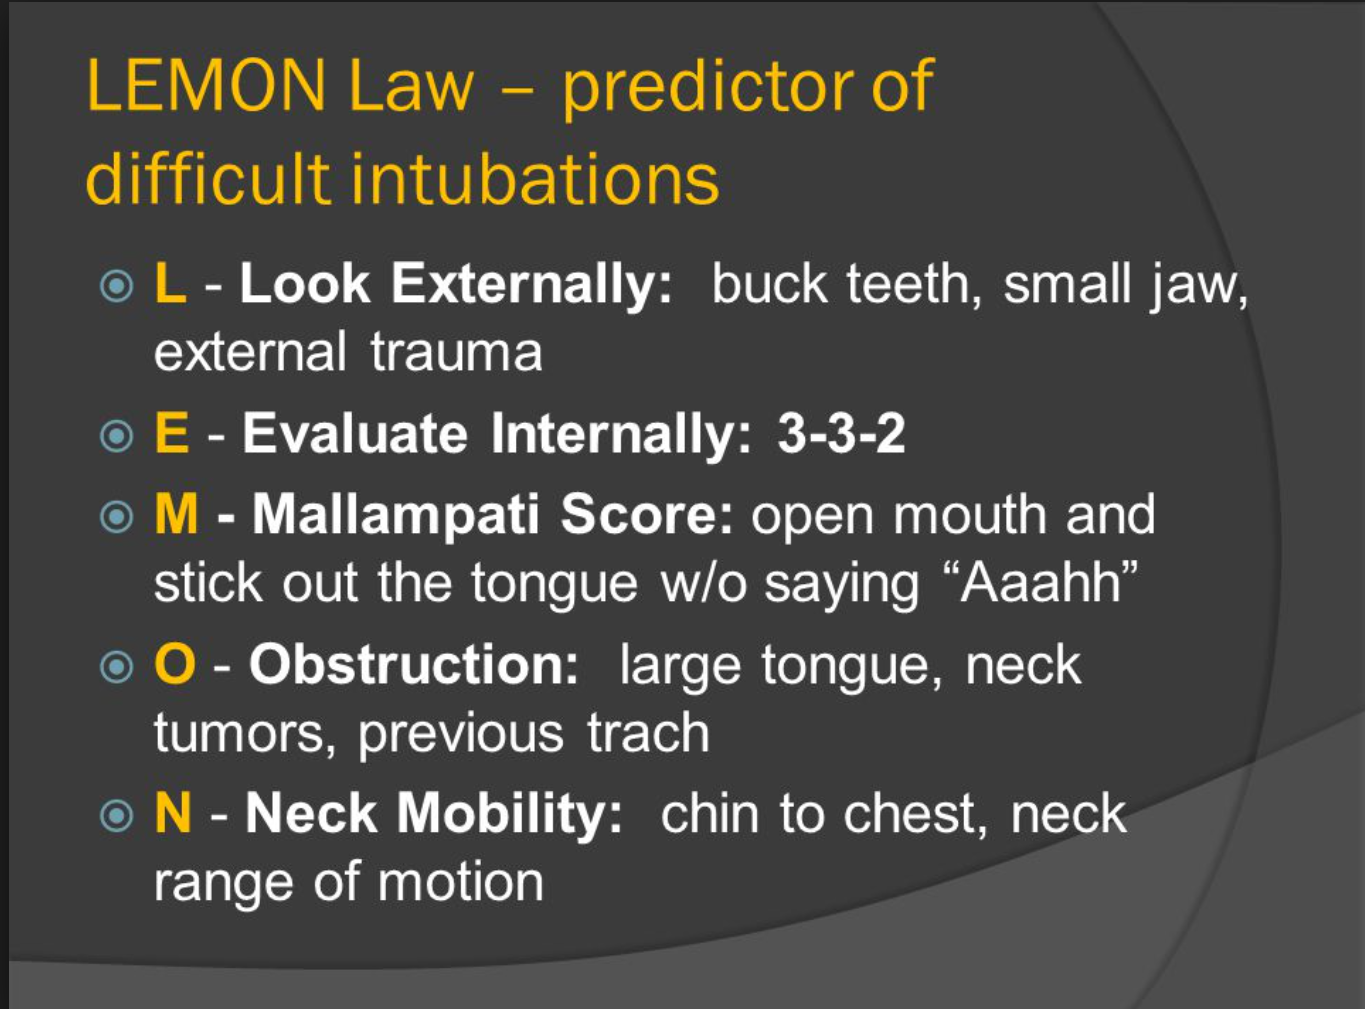 Specificity of the Lemon assessment is 86%. Sensitivity however is low <70%. Basically if you have signs of a difficult airway it will be difficult. If you have no signs of a difficult airway the Lemon assessment may fail you and the airway may still be difficult.